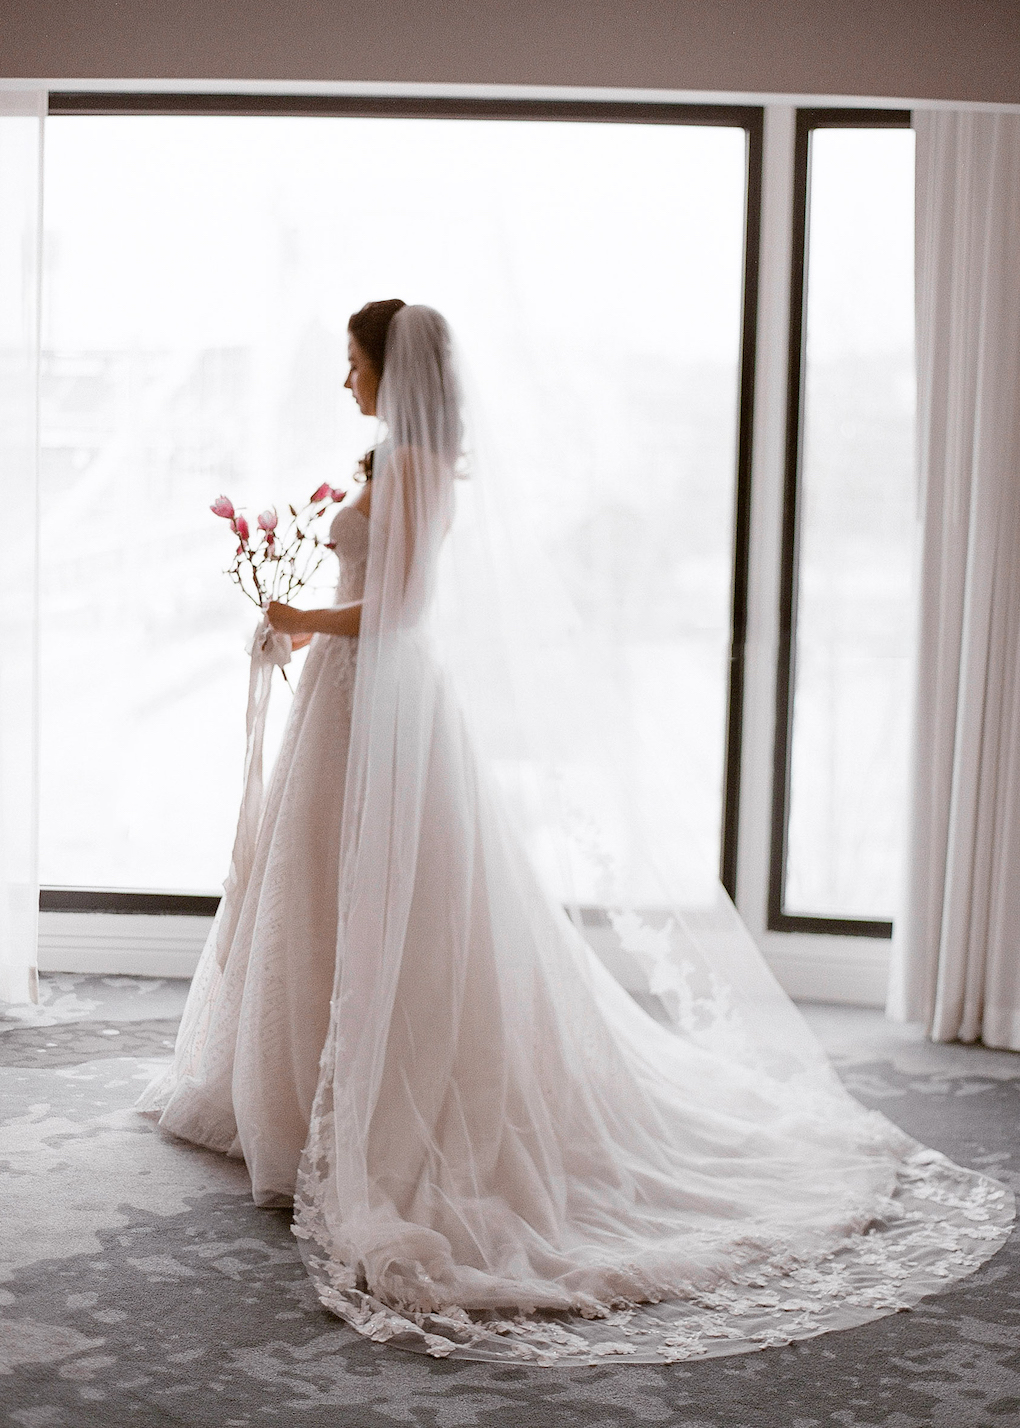 Bridal Portrait Ideas for hotel: Soft and Subtle Palettes of Spring Blossoms | Editorial Shoot at The Renaissance Pittsburgh by Exhale Events. See more inspiration at exhale-events.com!